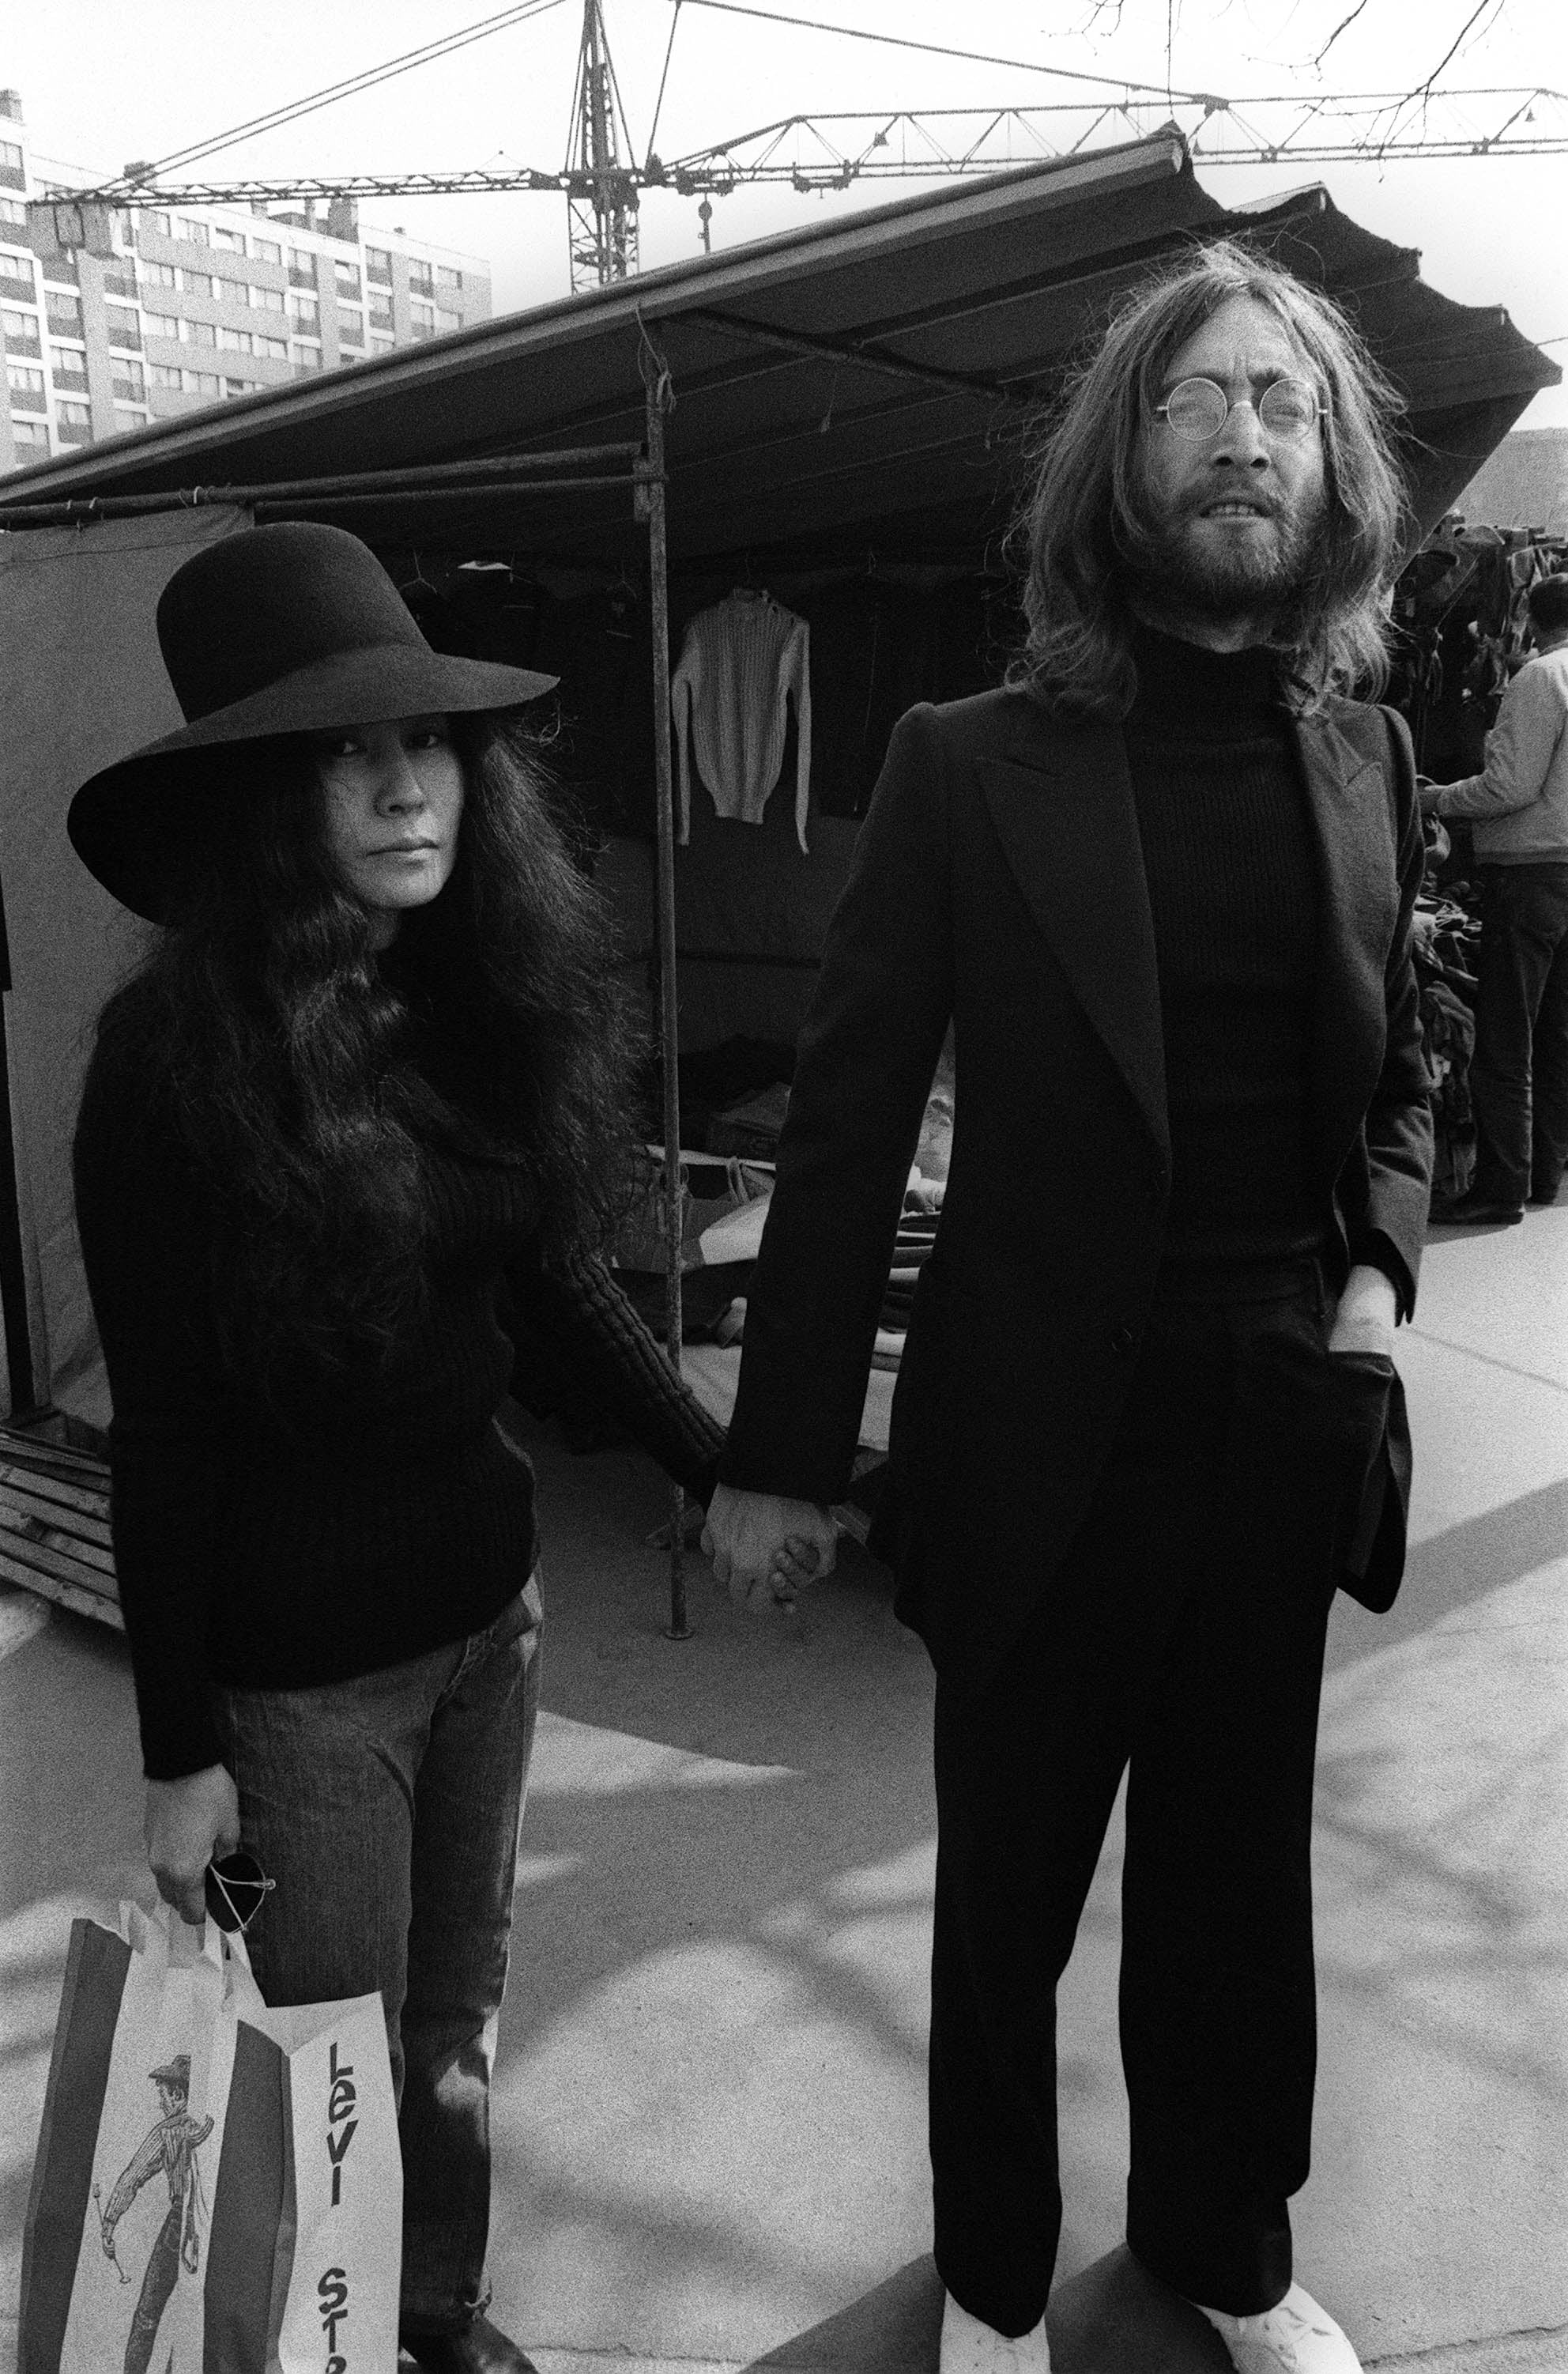 john lennon and yoko ono the most stylish music couples of all time popsugar fashion. Black Bedroom Furniture Sets. Home Design Ideas